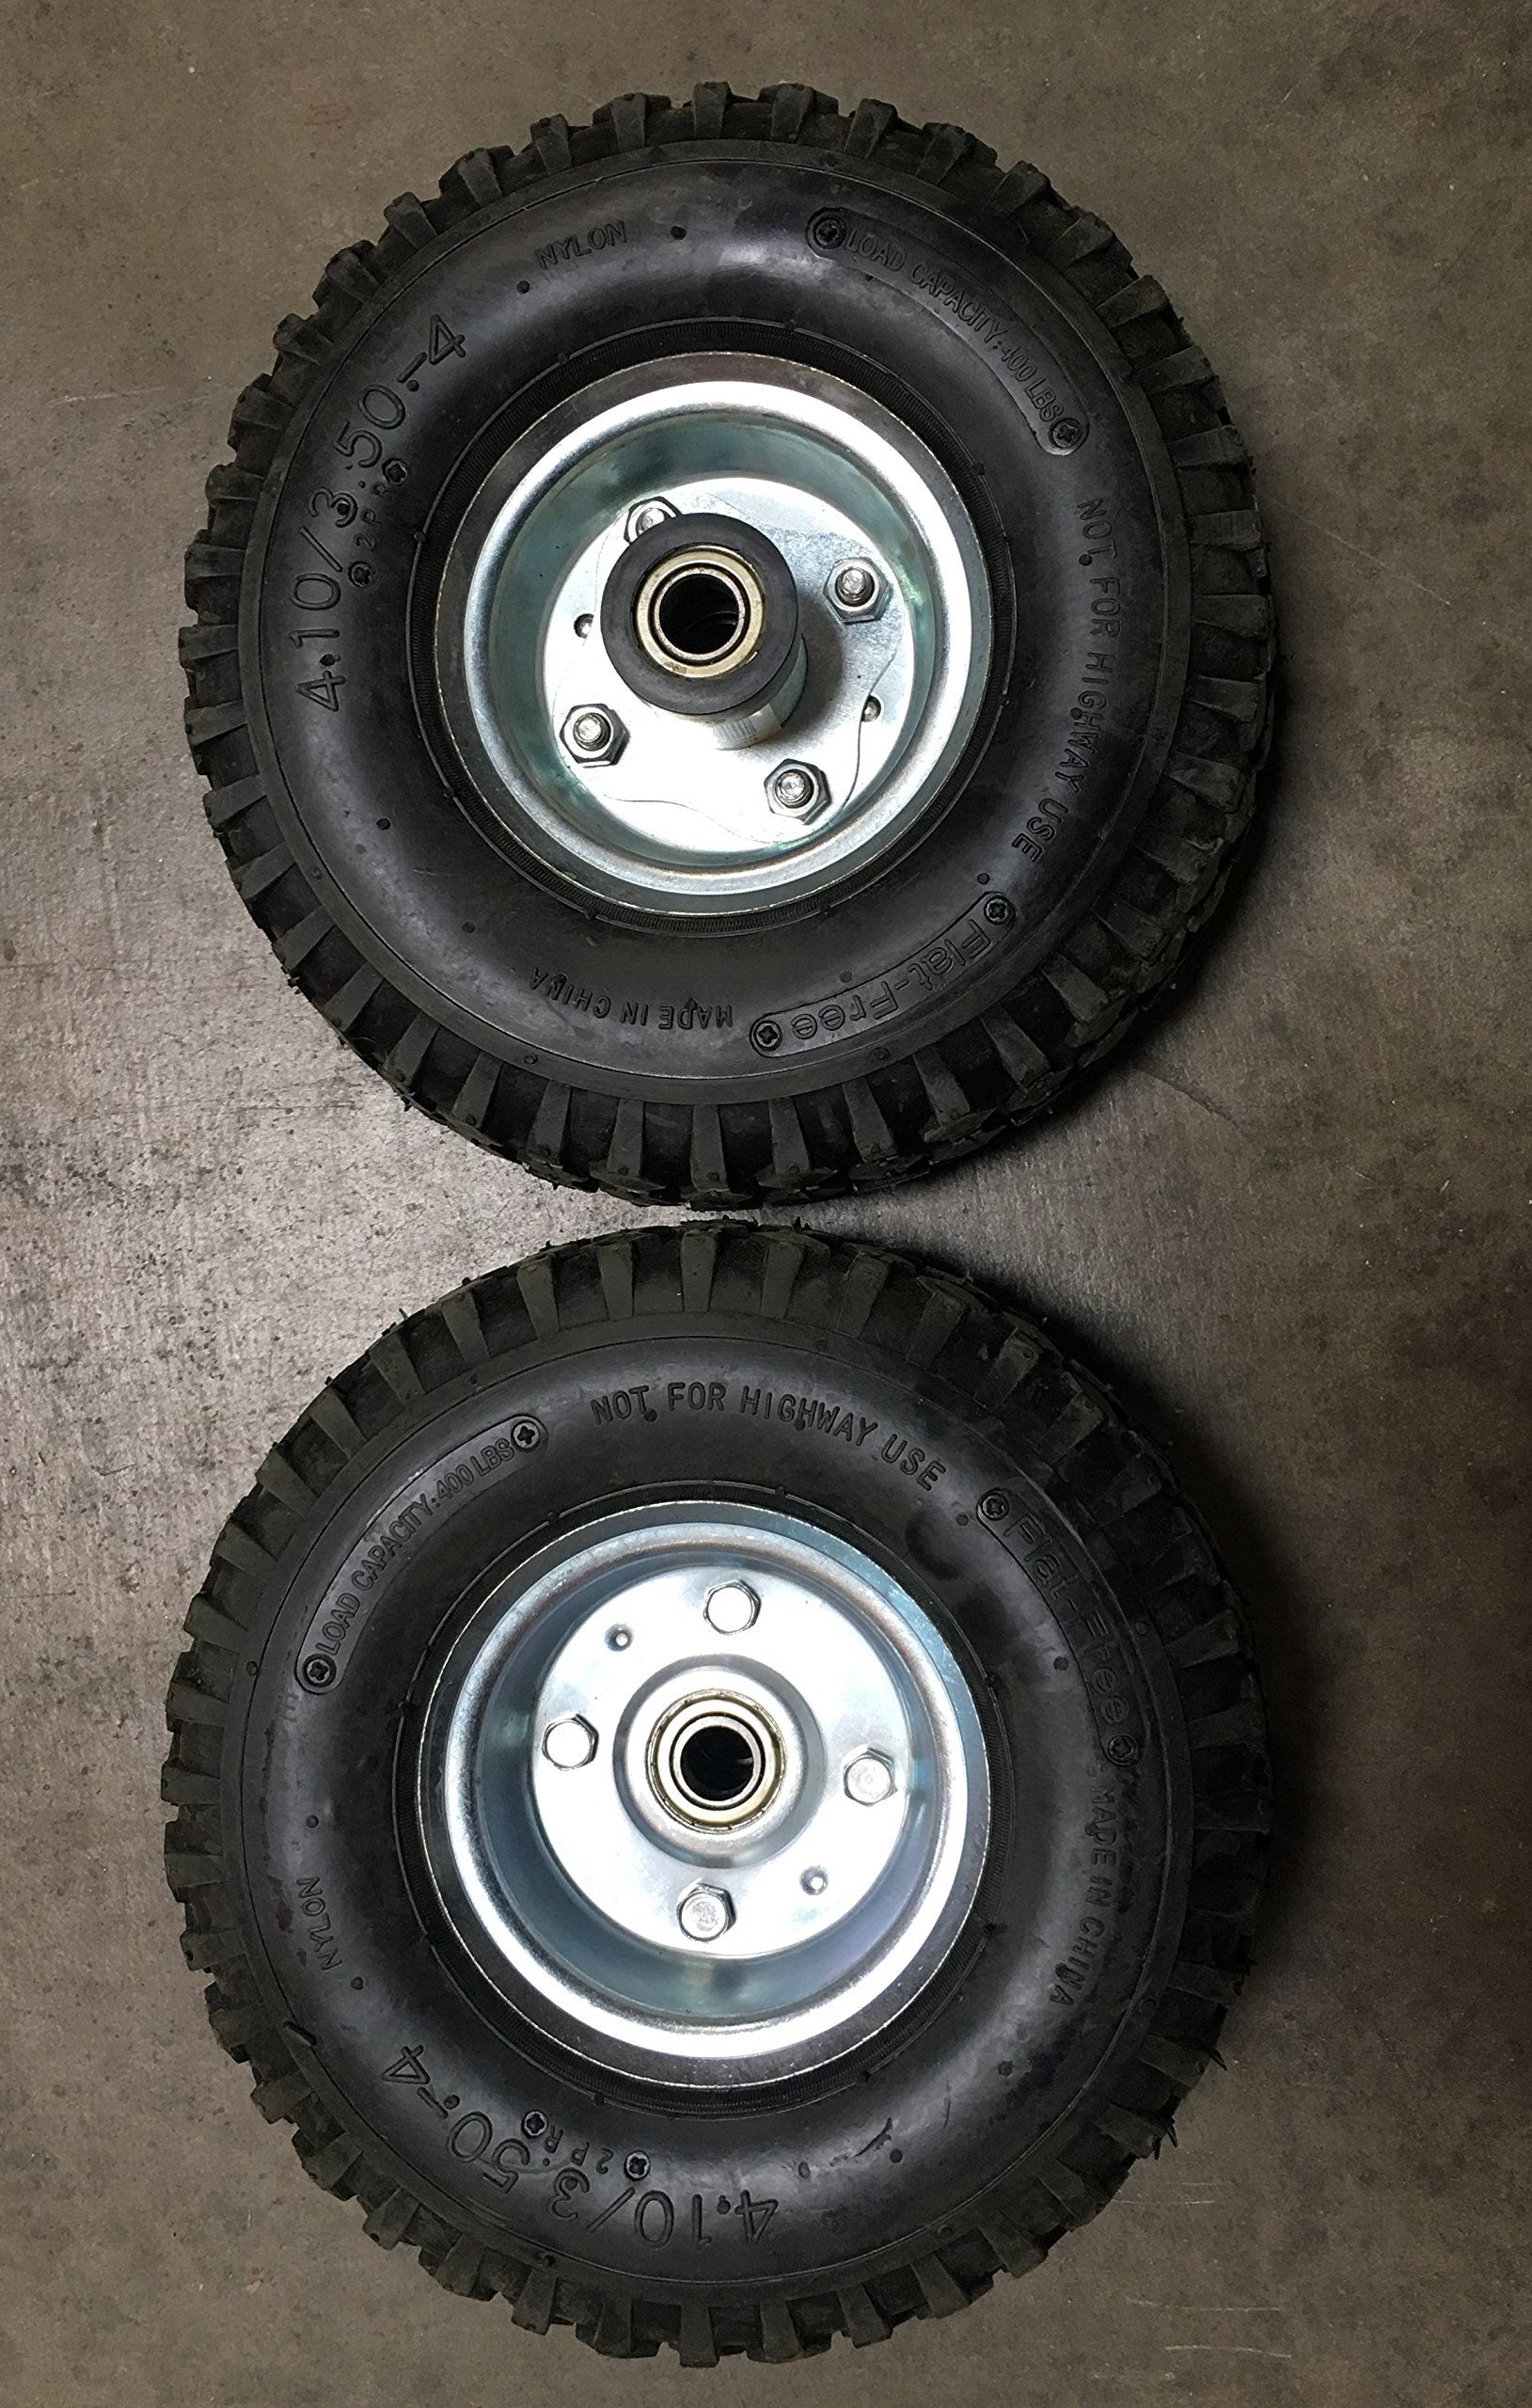 New Pair of 500LB Non Flat Tires, Hand Truck / All-Purpose Utility Tire on Wheel, 2 1/8'' Offset Hub, 5/8'' Bearings by MQT (Image #1)